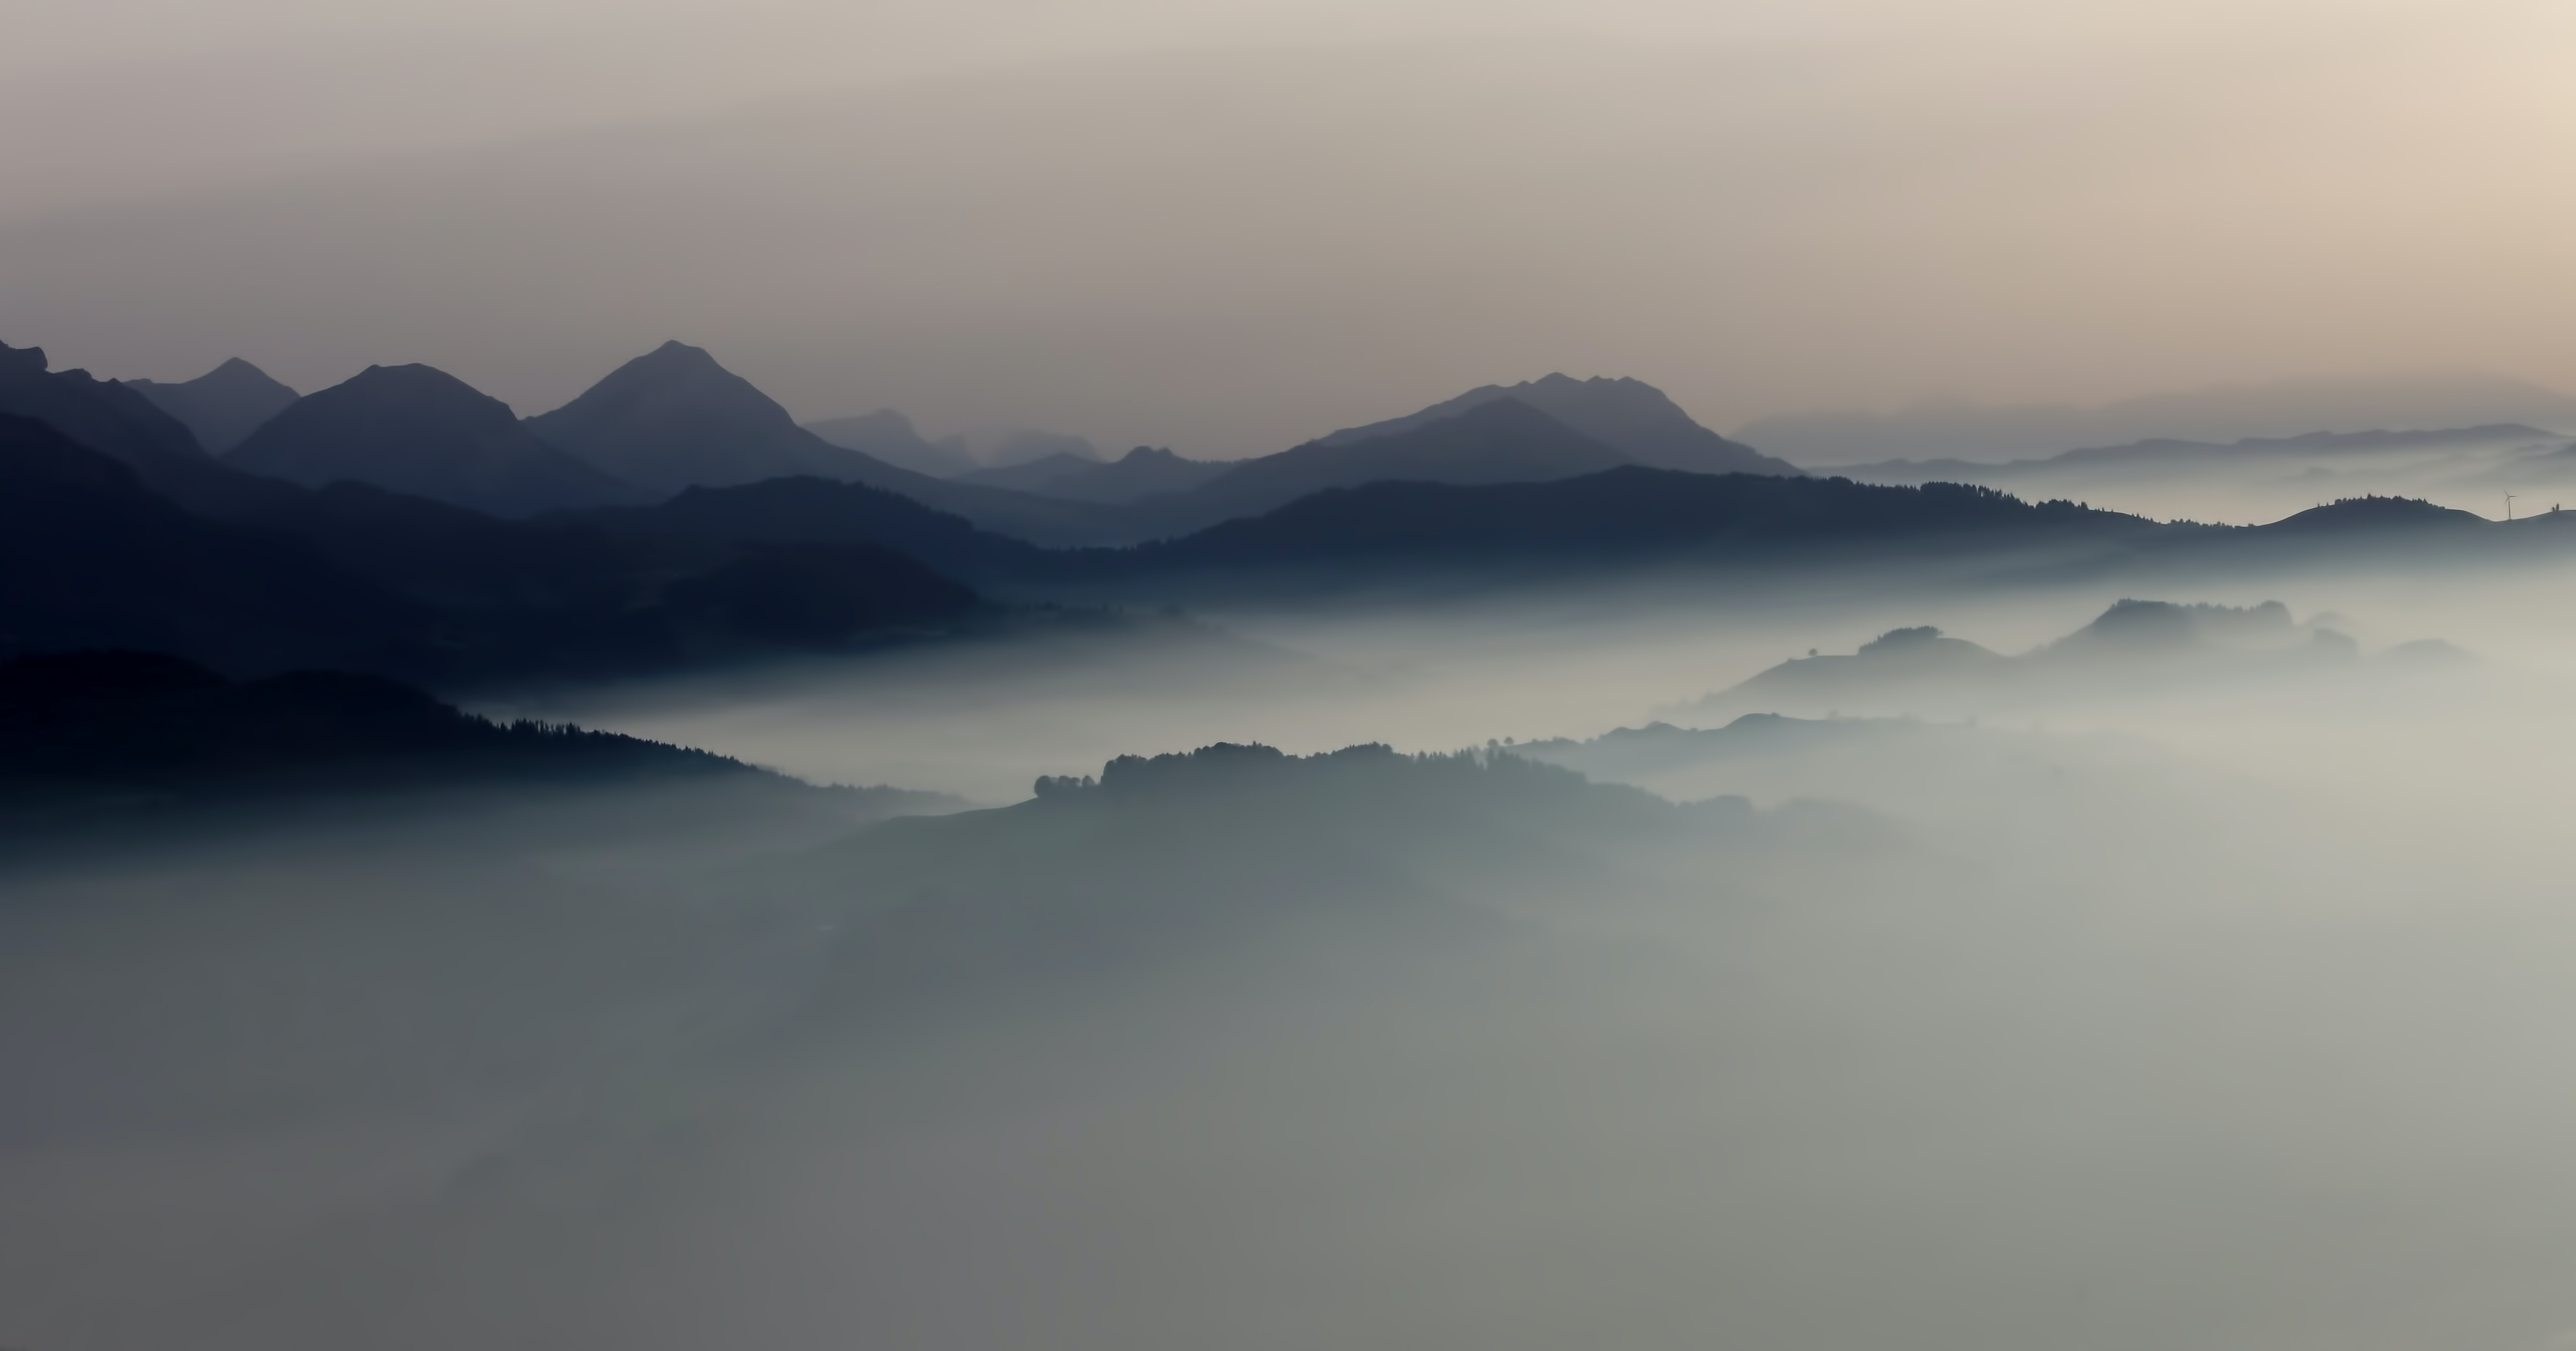 Dark silhouettes of mountain peaks emerge from the mist in Lucerne